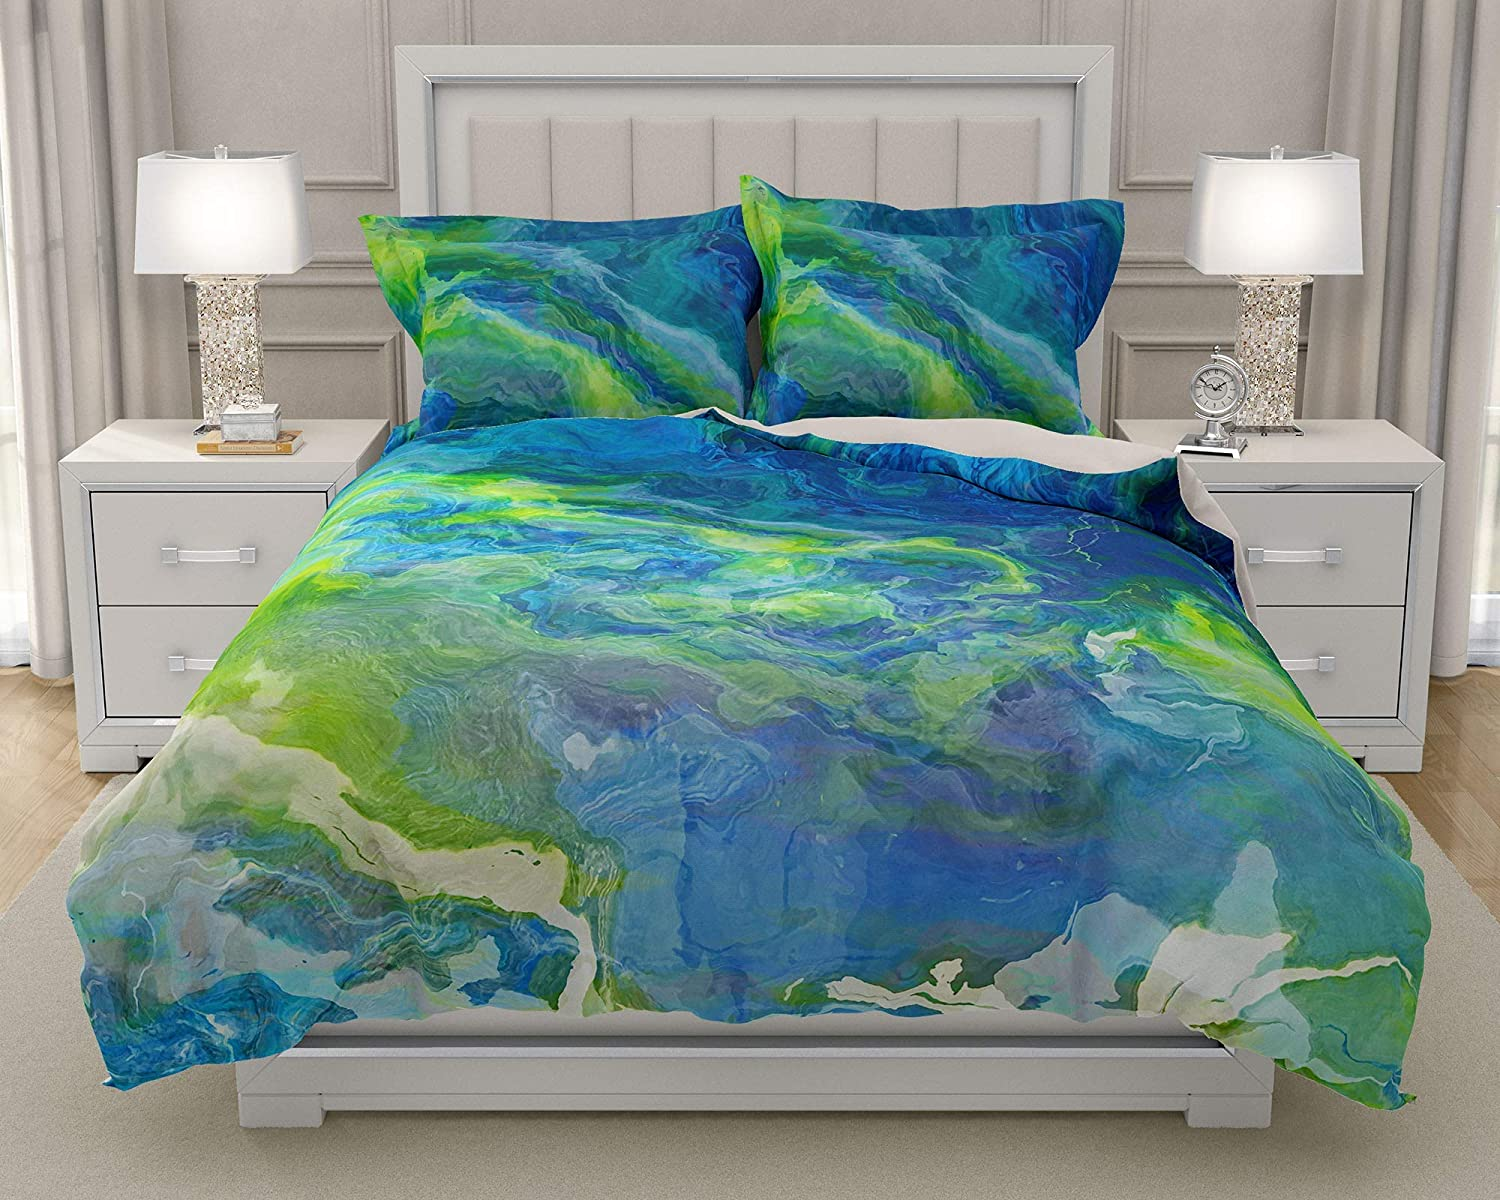 Image of Home and Kitchen King or Queen 3 pc Duvet Cover Set with abstract art, River Dream